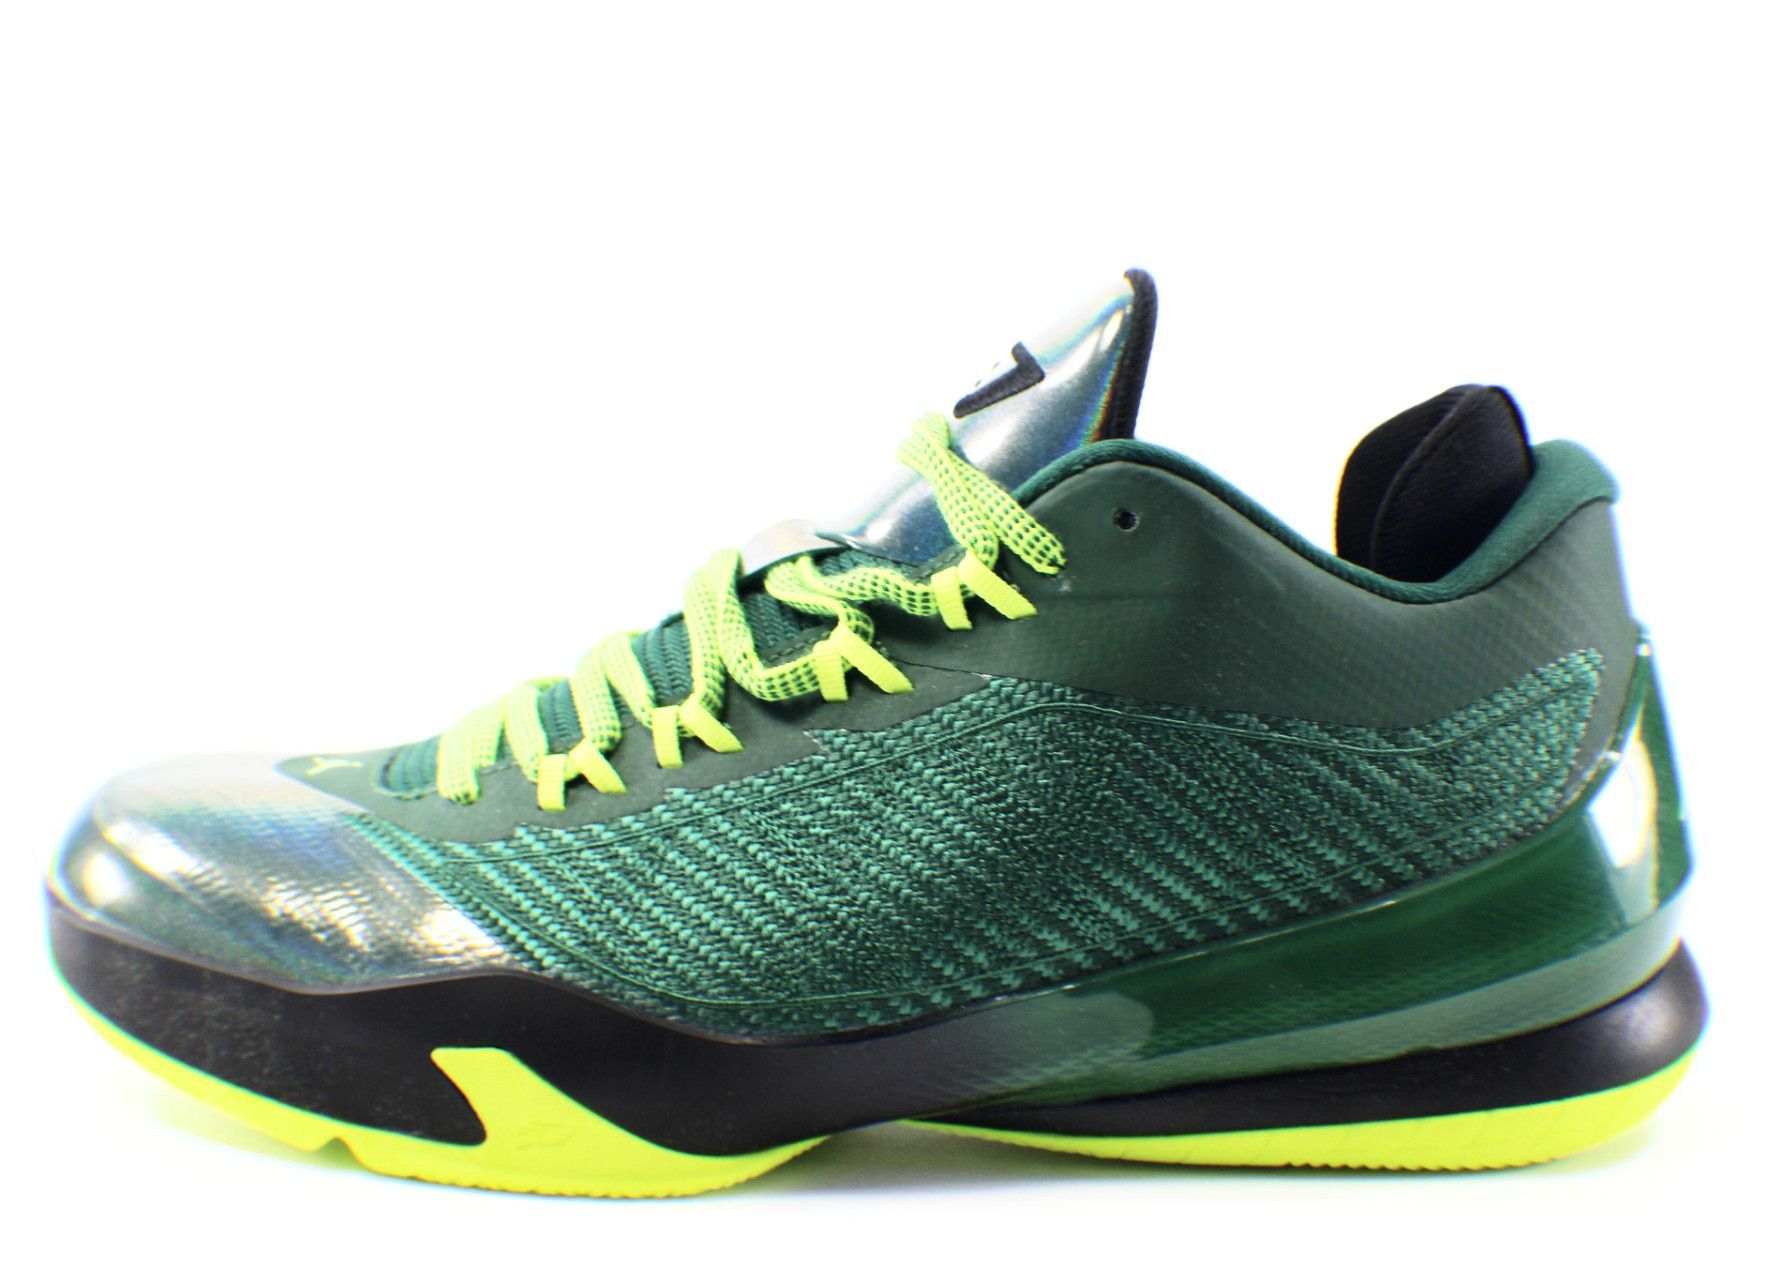 NIKE Air Jordan CP3.VIII Basketball Shoes (Volt Green/Black)